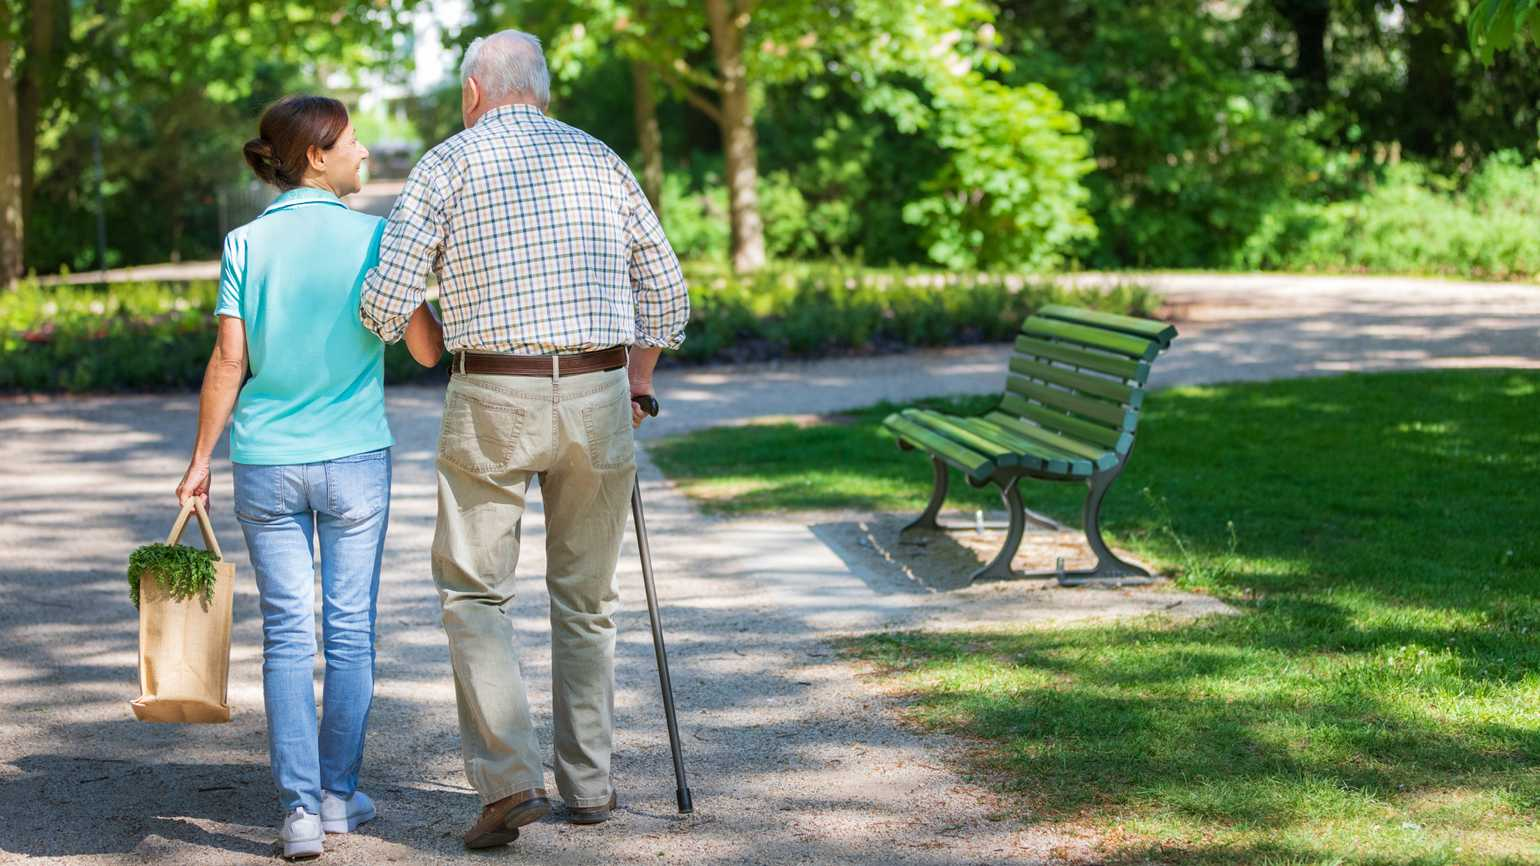 A caregiver woman with a senior man walking in the park.